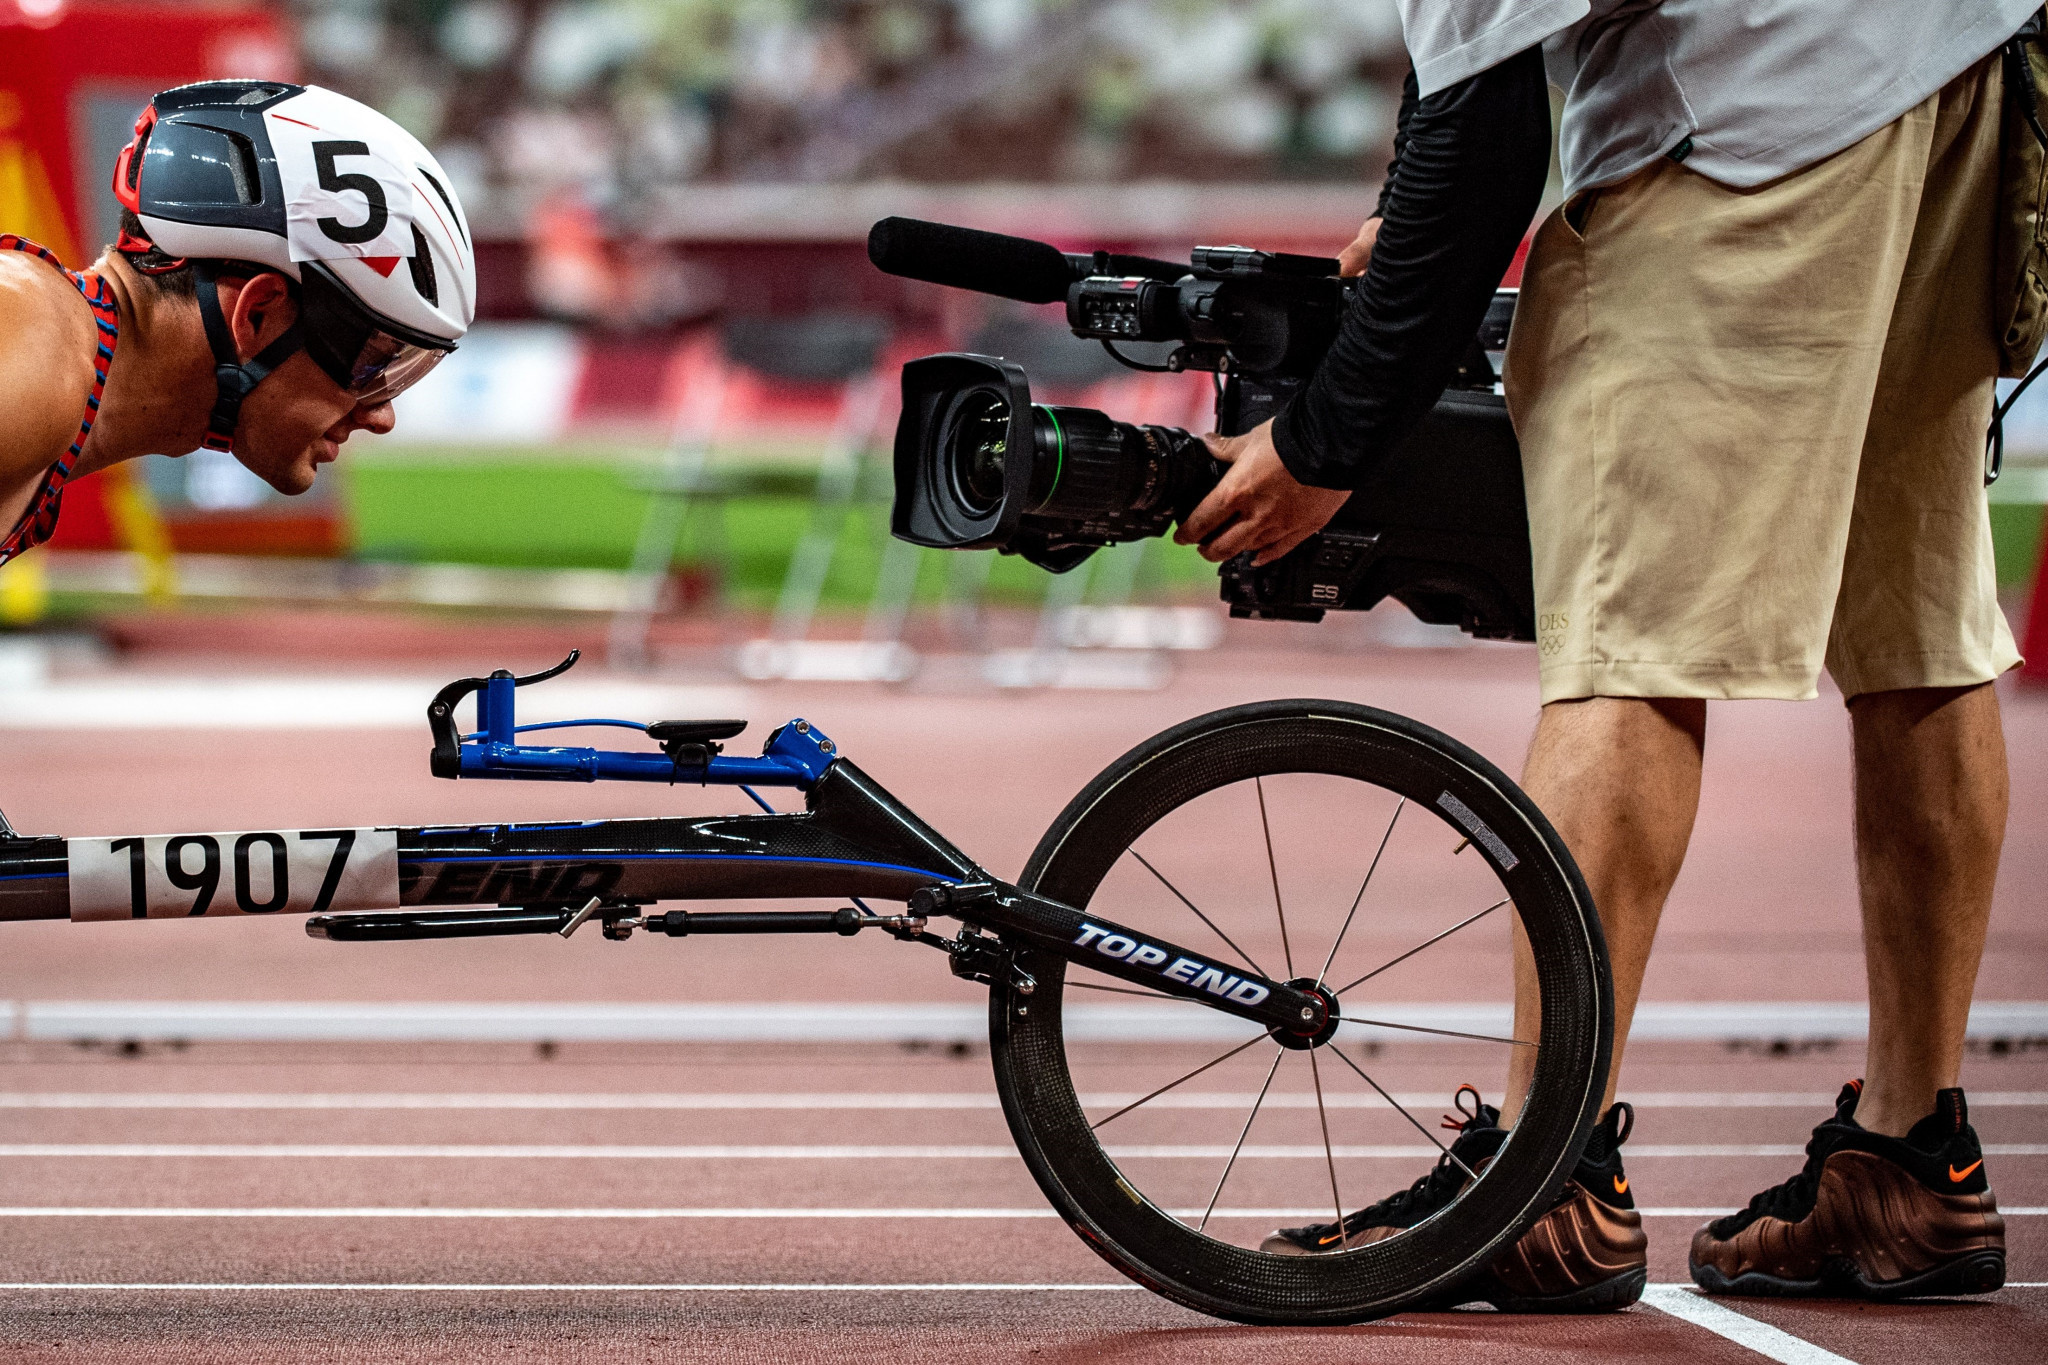 Paris 2024 launches broadcast tendering process for Paralympic Games